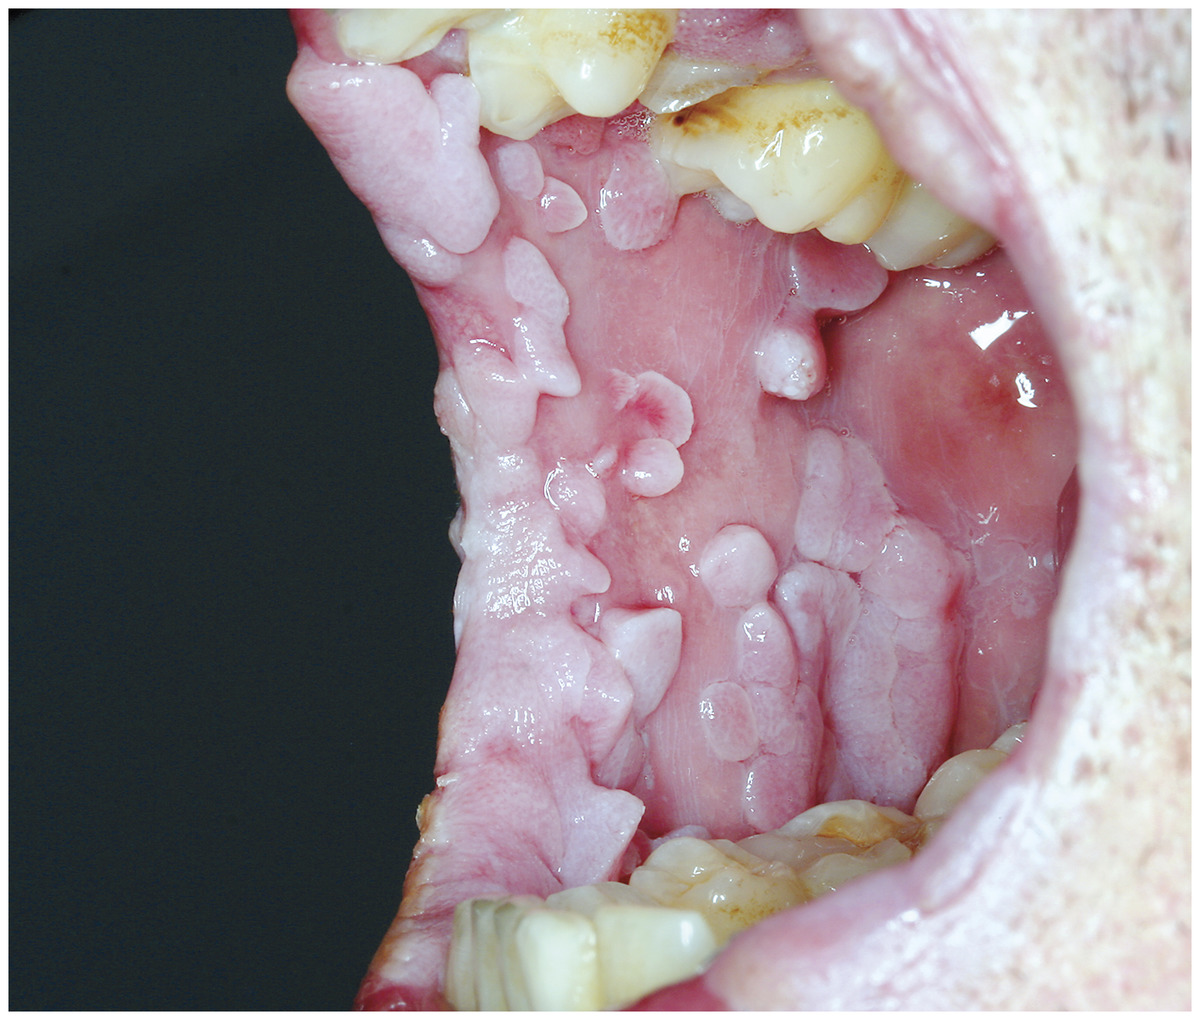 papillomas on tongue